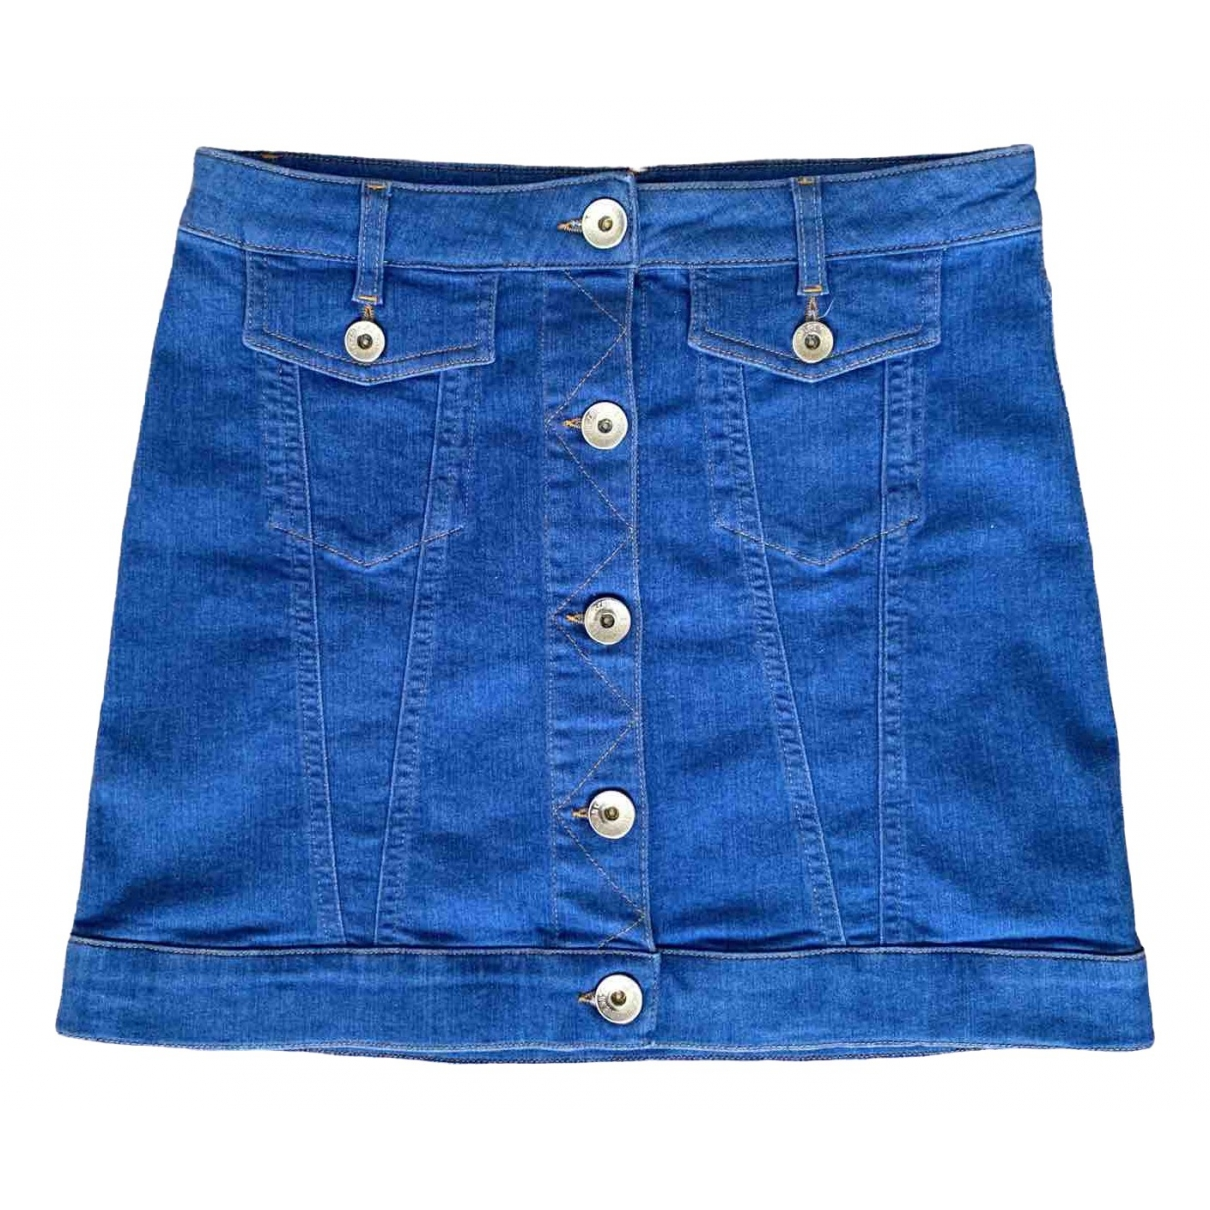 Moschino Love \N Blue Denim - Jeans skirt for Women 40 IT